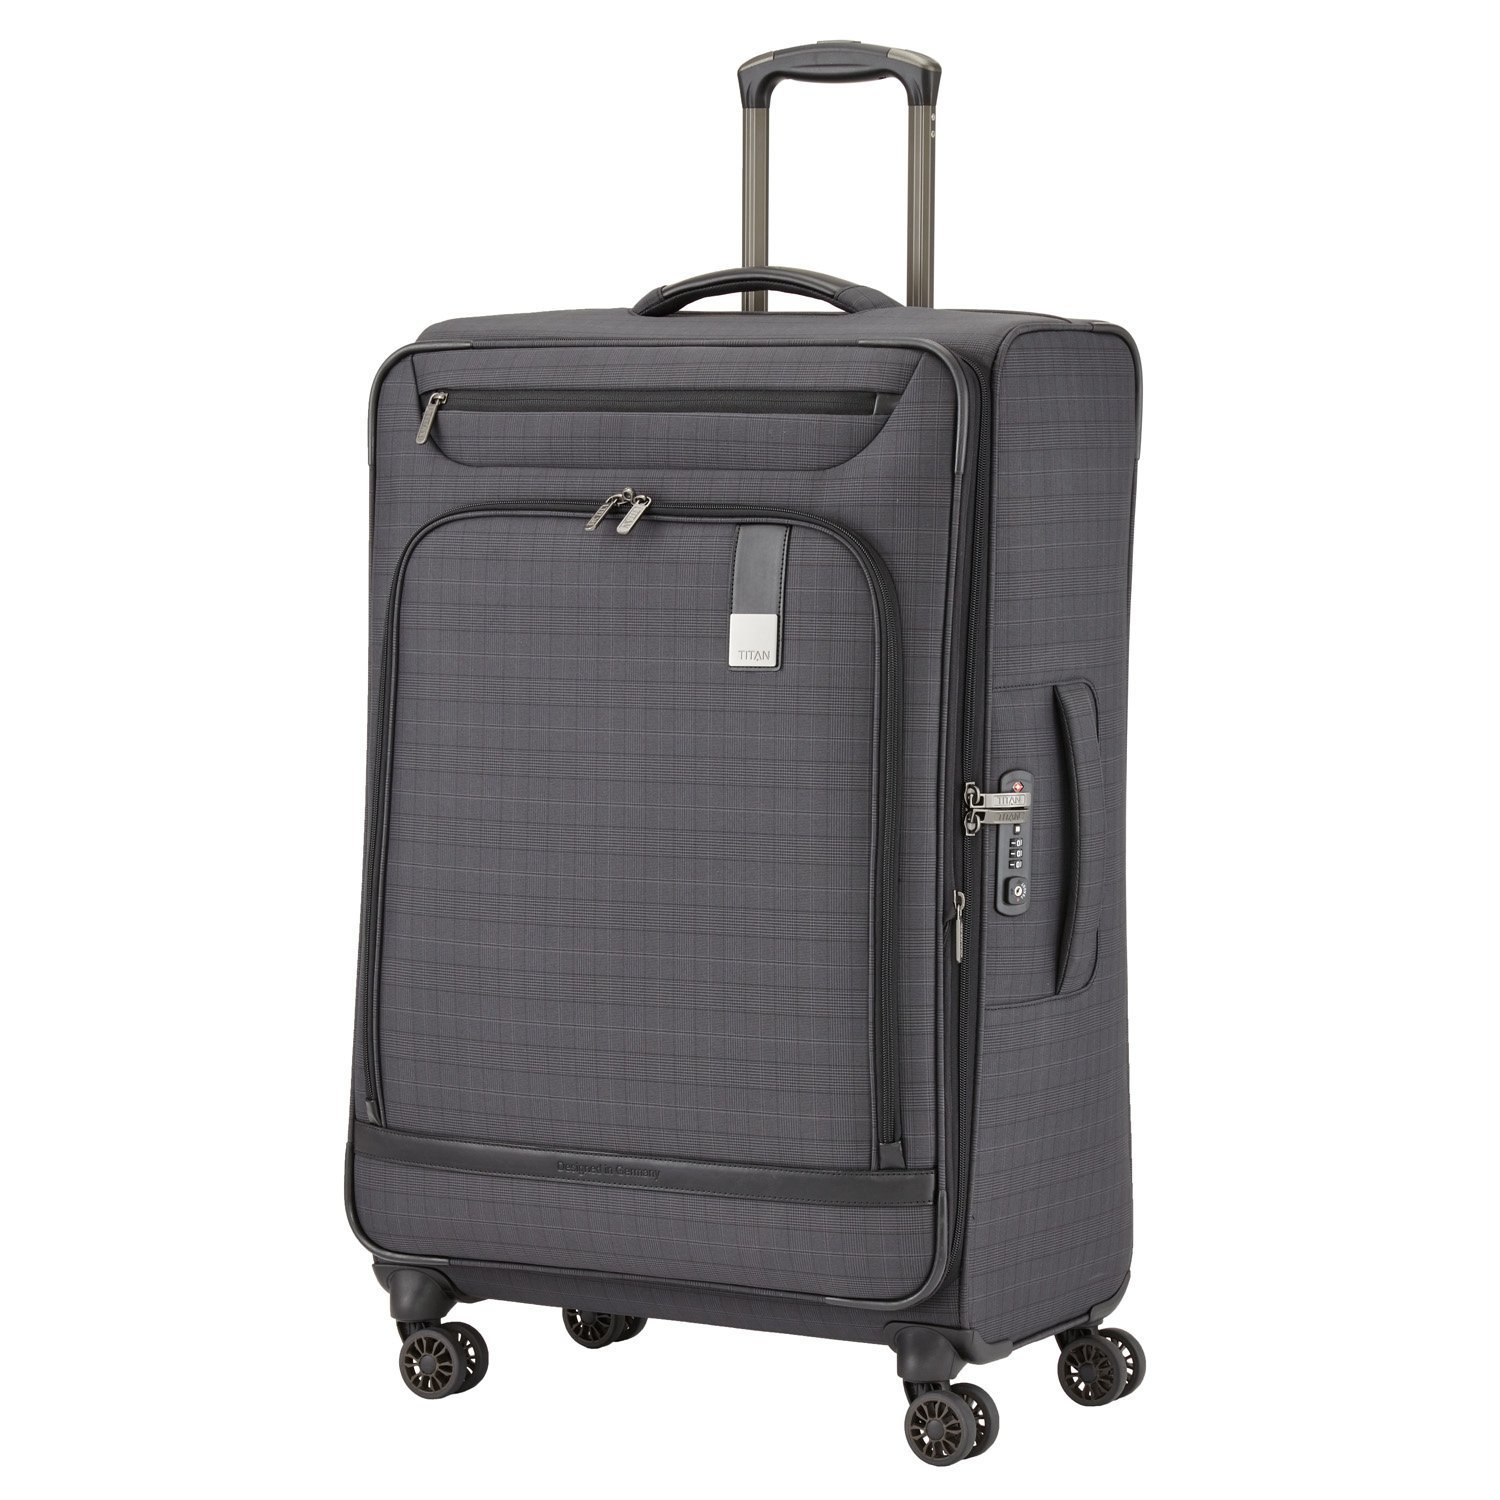 Titan CEO Executive 31'' 4 Wheel Spinner Business Case Luggage Grey by Titan